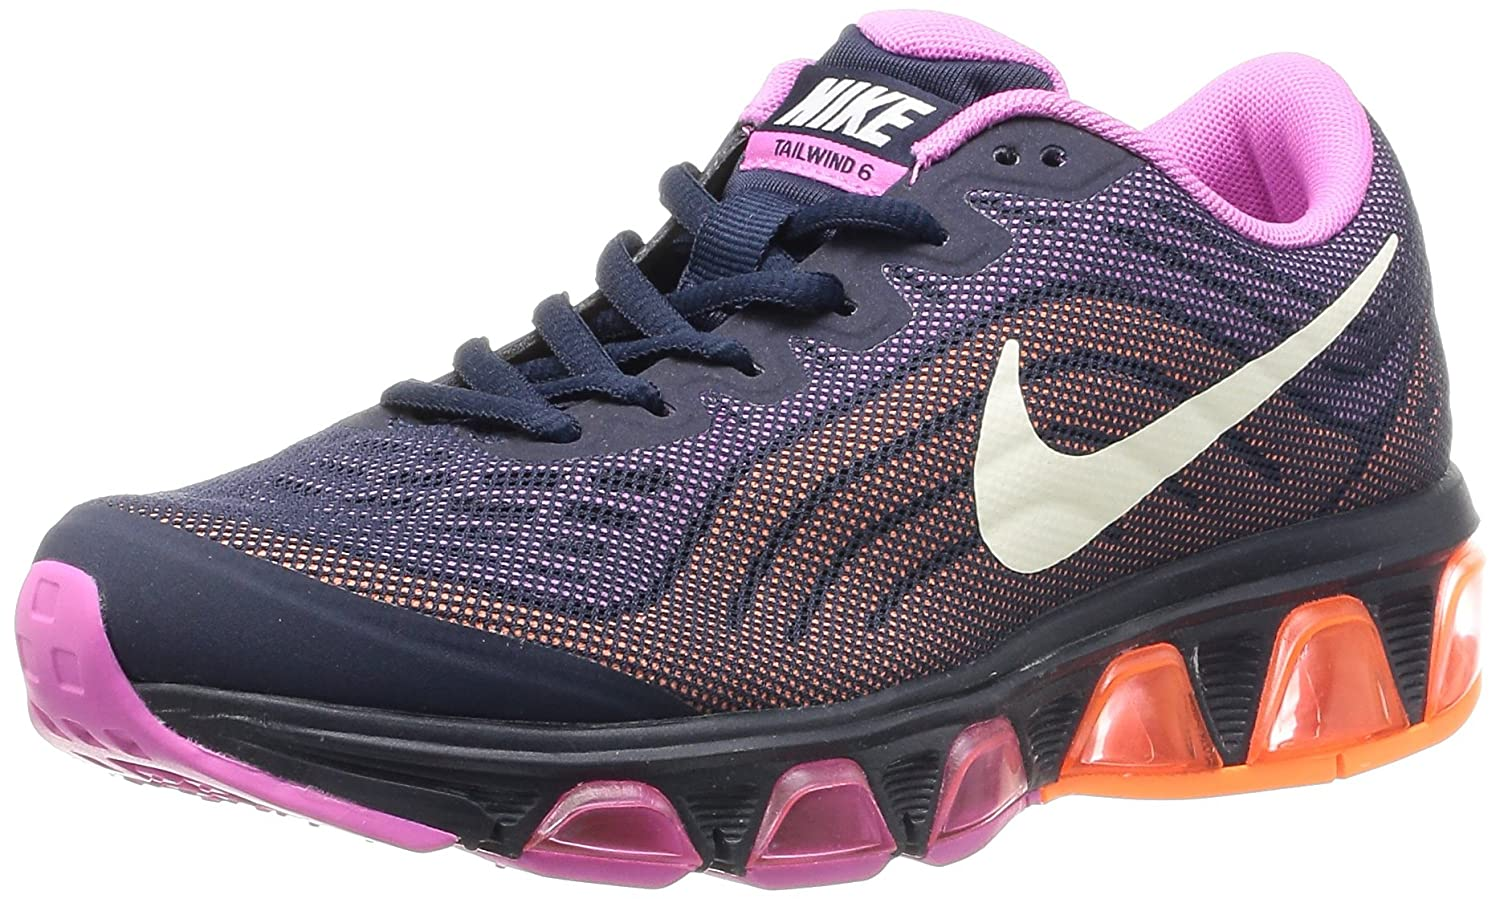 cheap for discount 85d7e 35bb5 ... orange promo code for amazon nike womens air max tailwind 6 running  shoes running 6bee2 72f33 ...